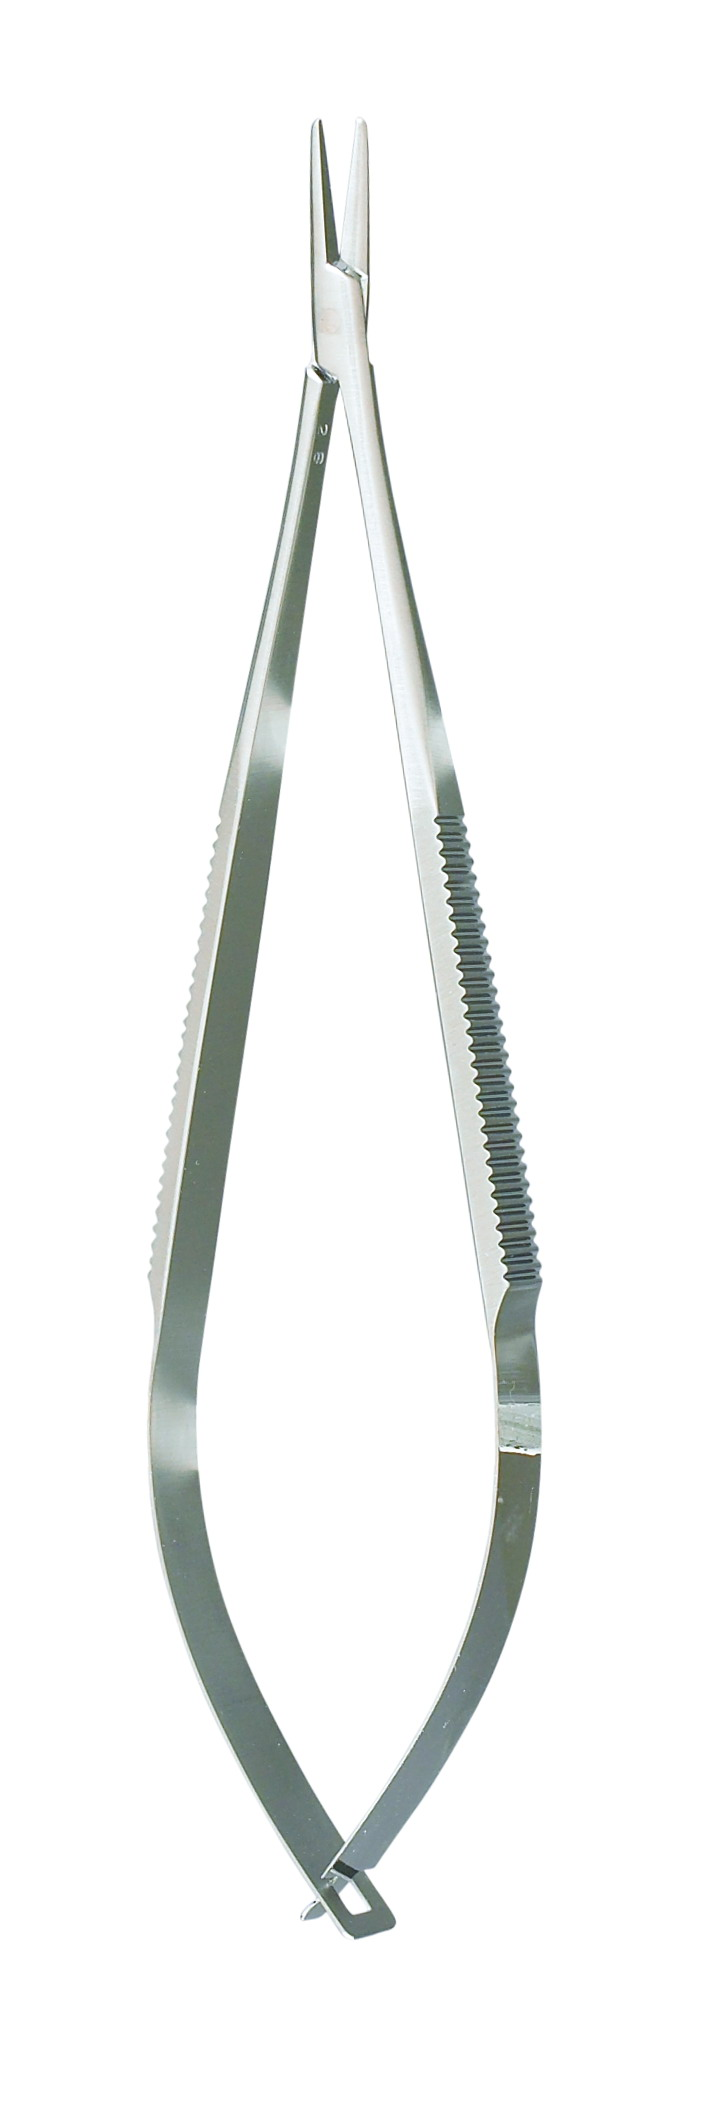 castroviejo-needle-holder-5-1-2-14-cm-straight-without-lok-18-1820-miltex.jpg